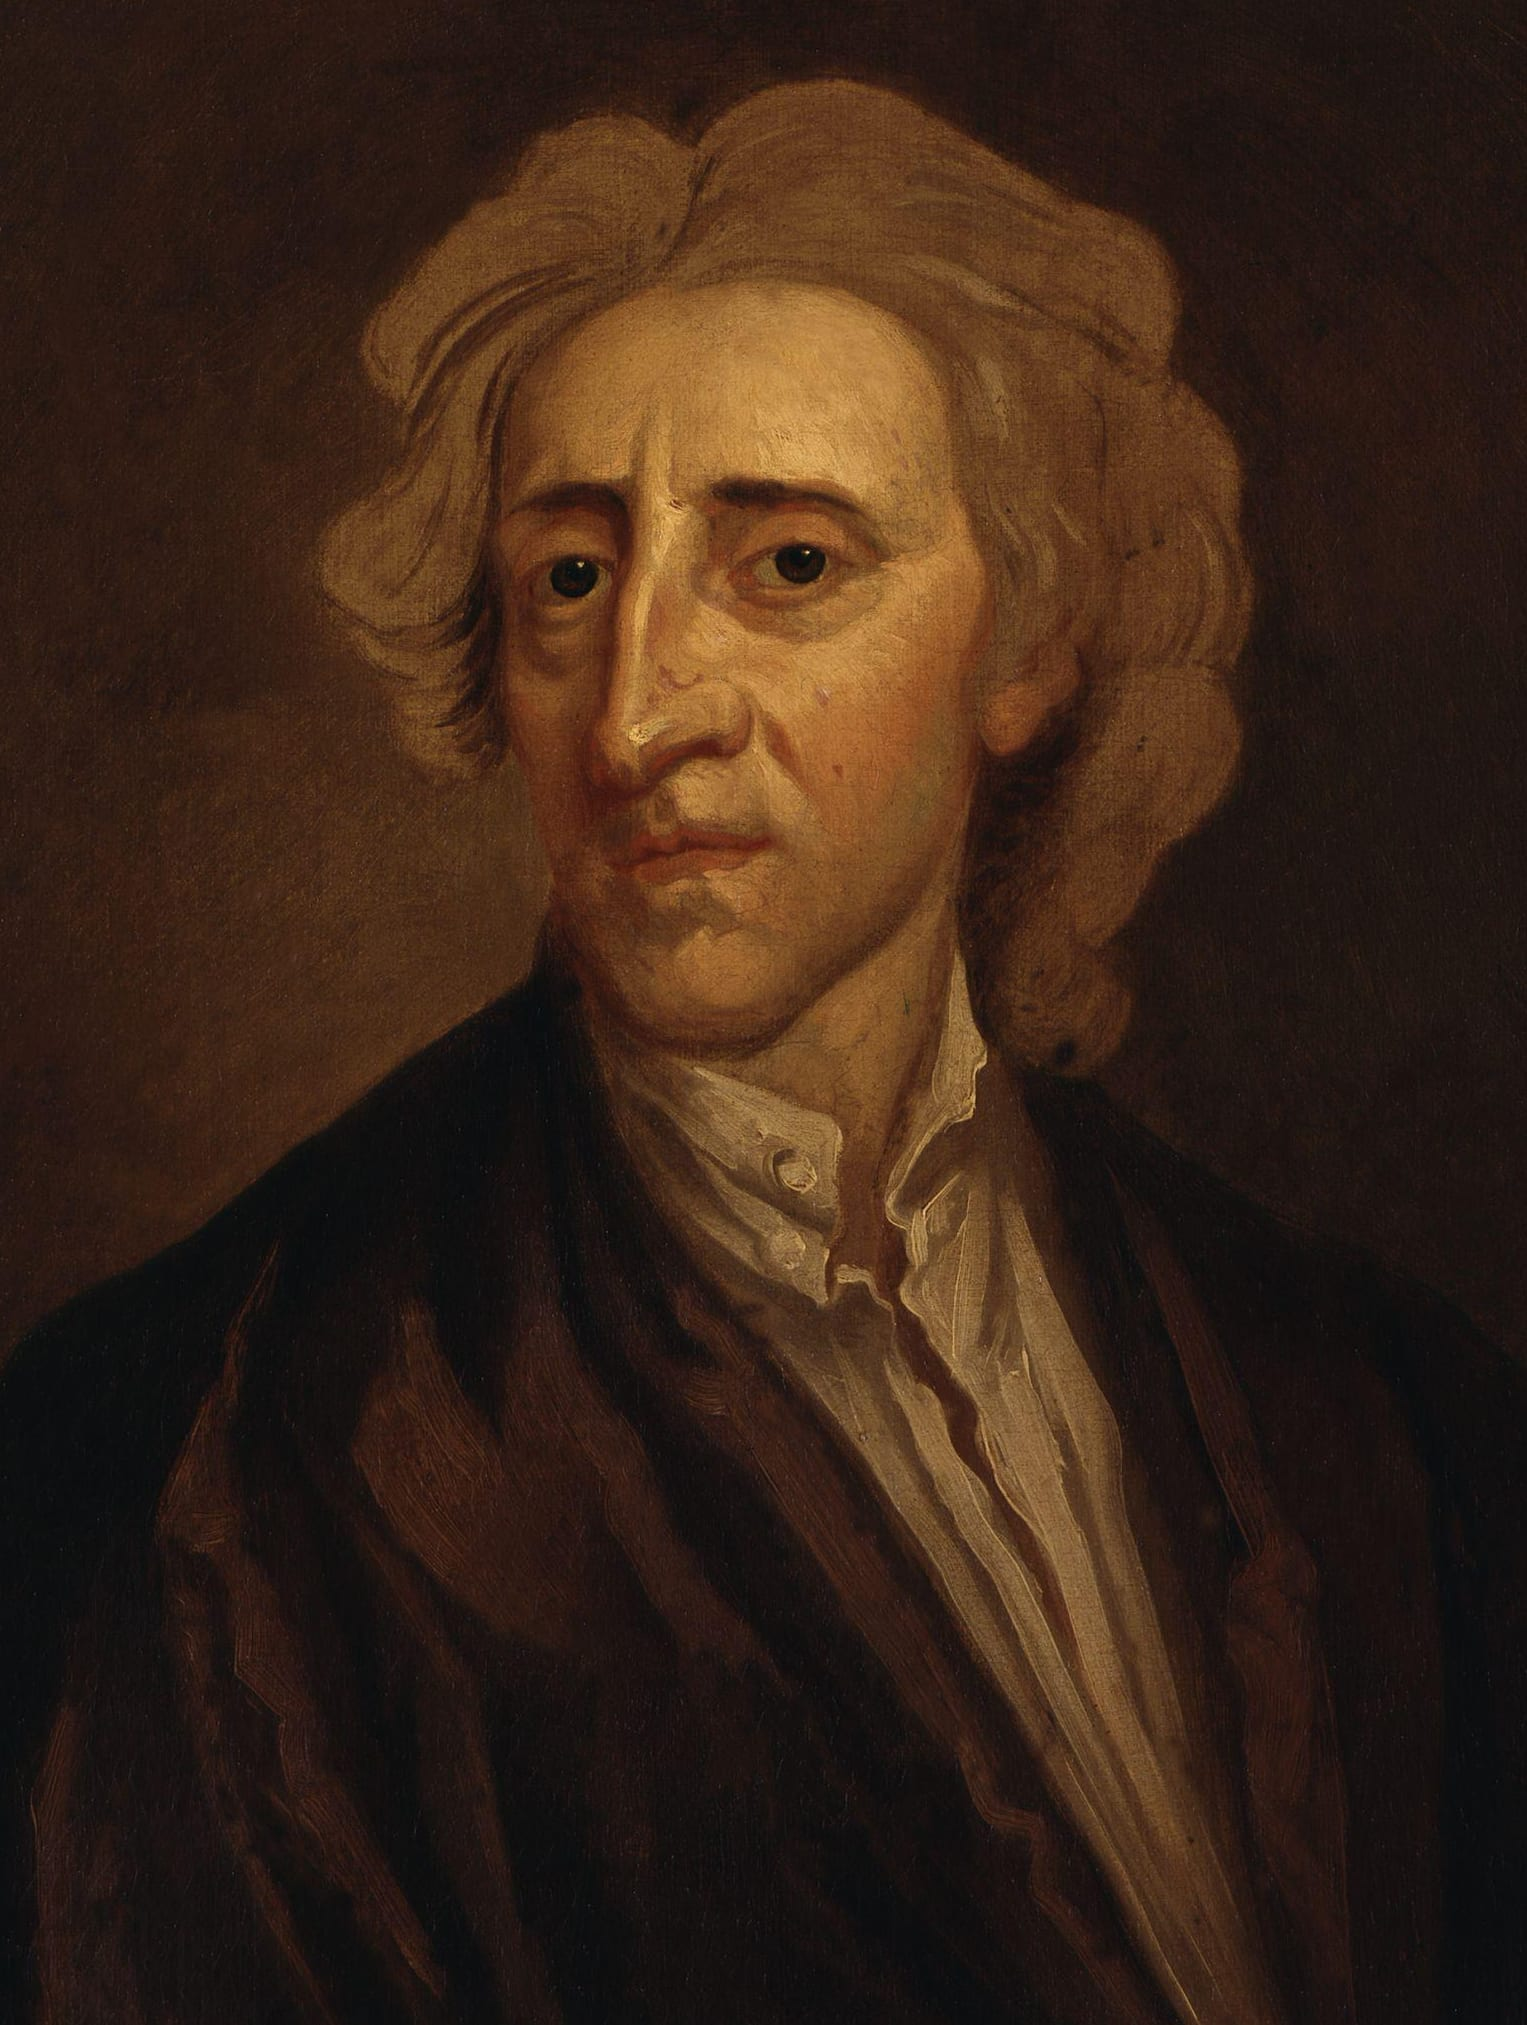 John_Locke_by_Sir_Godfrey_Kneller,_Bt